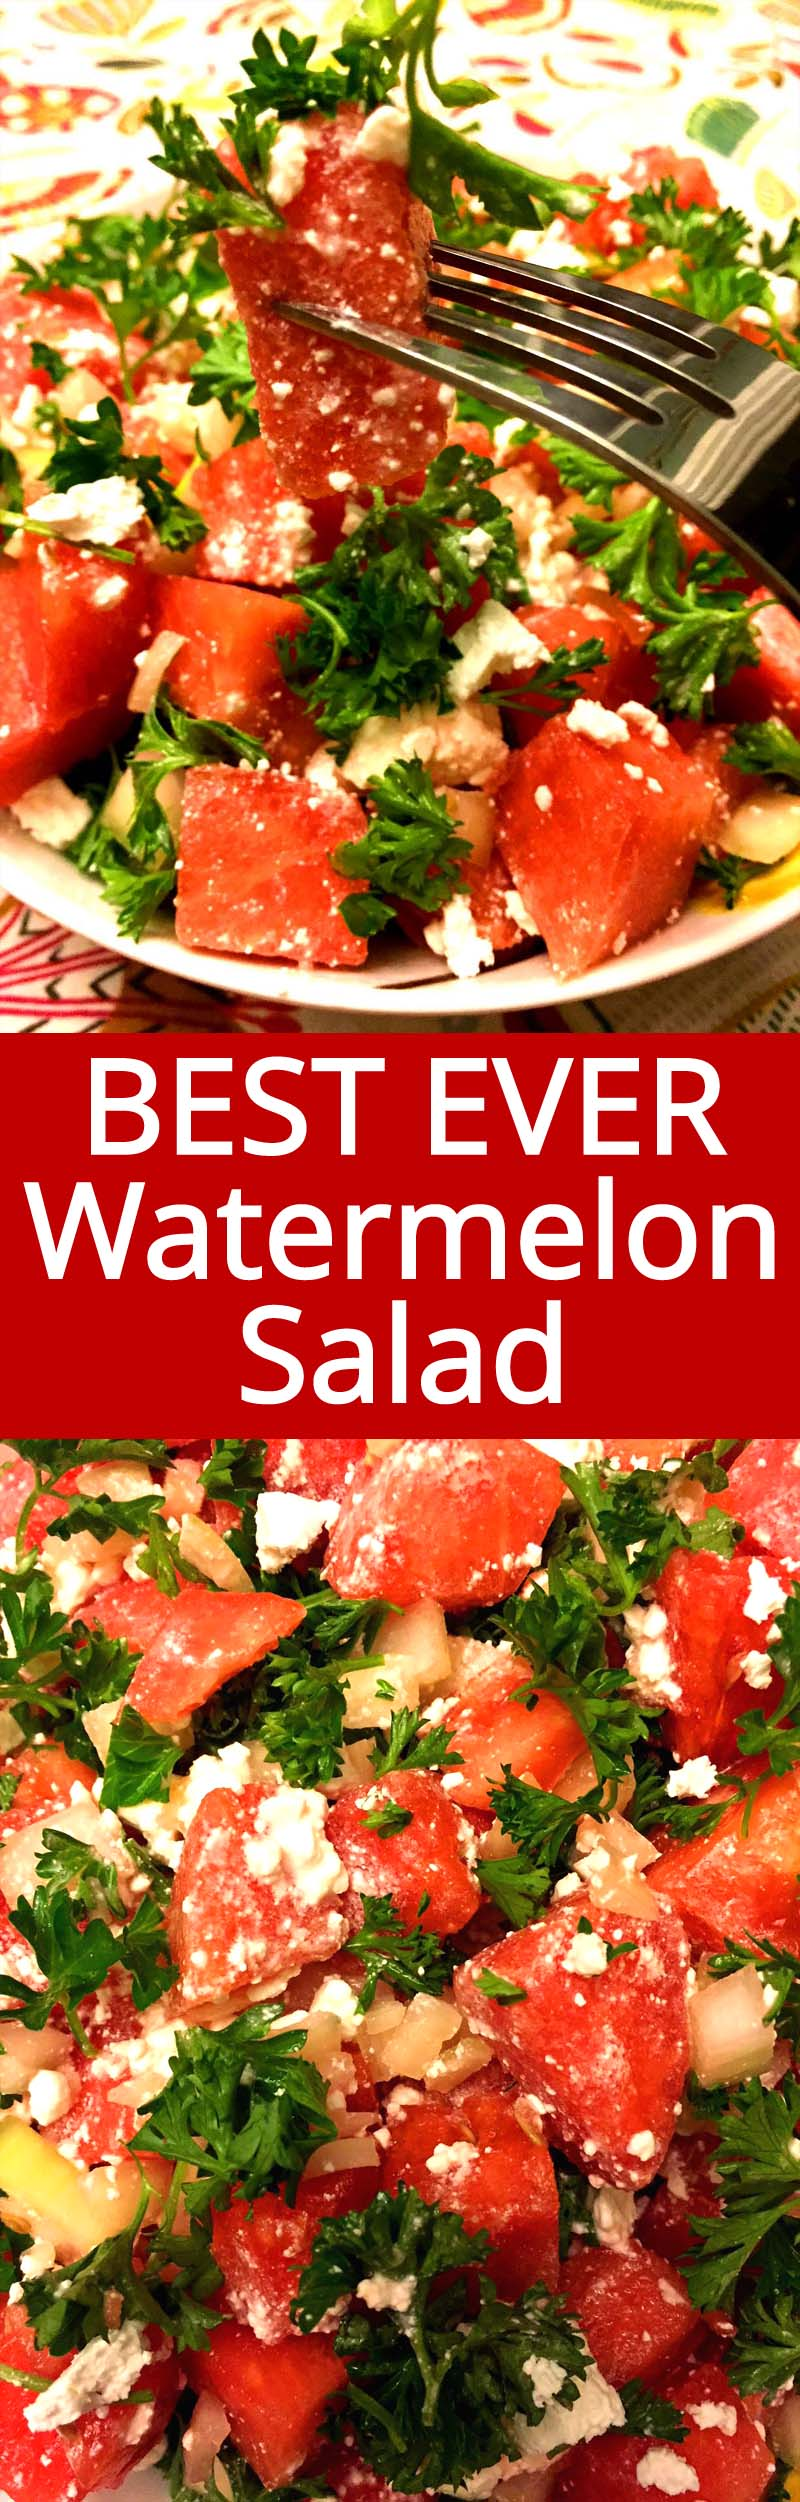 I never thought of pairing watermelon with savory food, but it tastes so good with feta! I LOVE THIS COMBO! This watermelon feta salad is amazing, so refreshing!